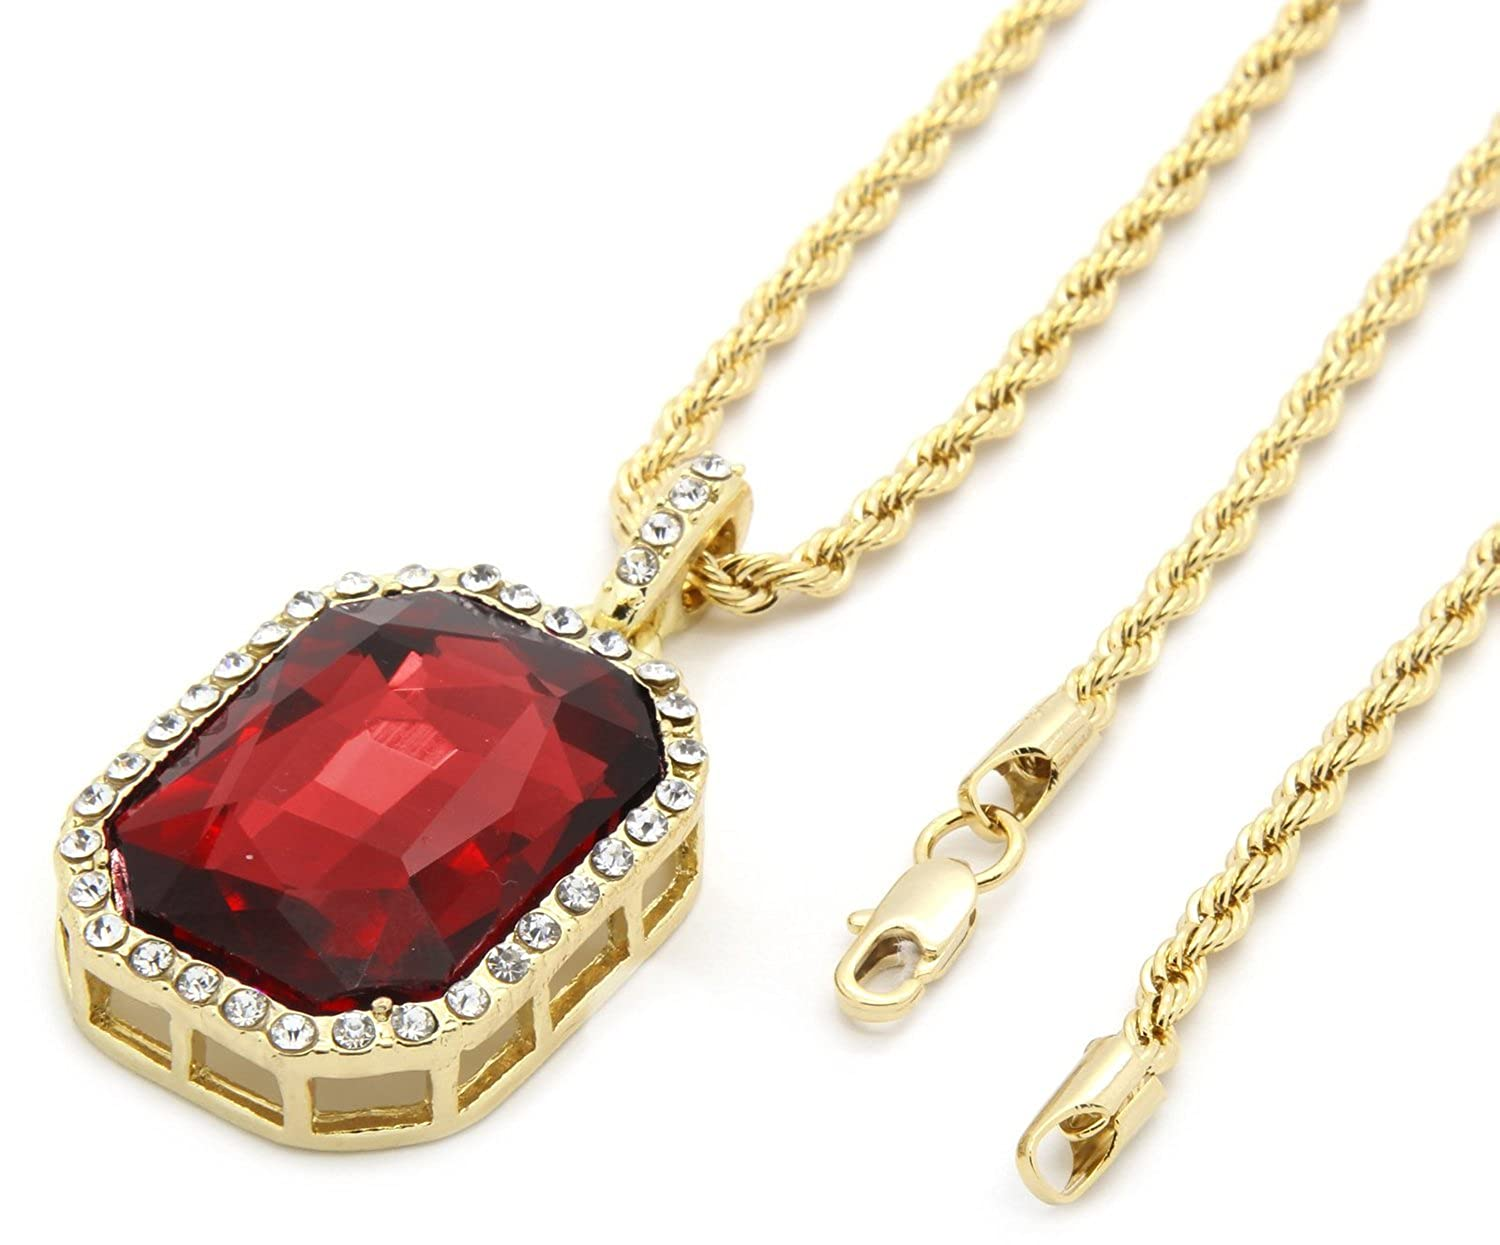 r double in jewelry silver brand necklace fine red real solid gemstone pendant sterling necklaces heart from created ruby item